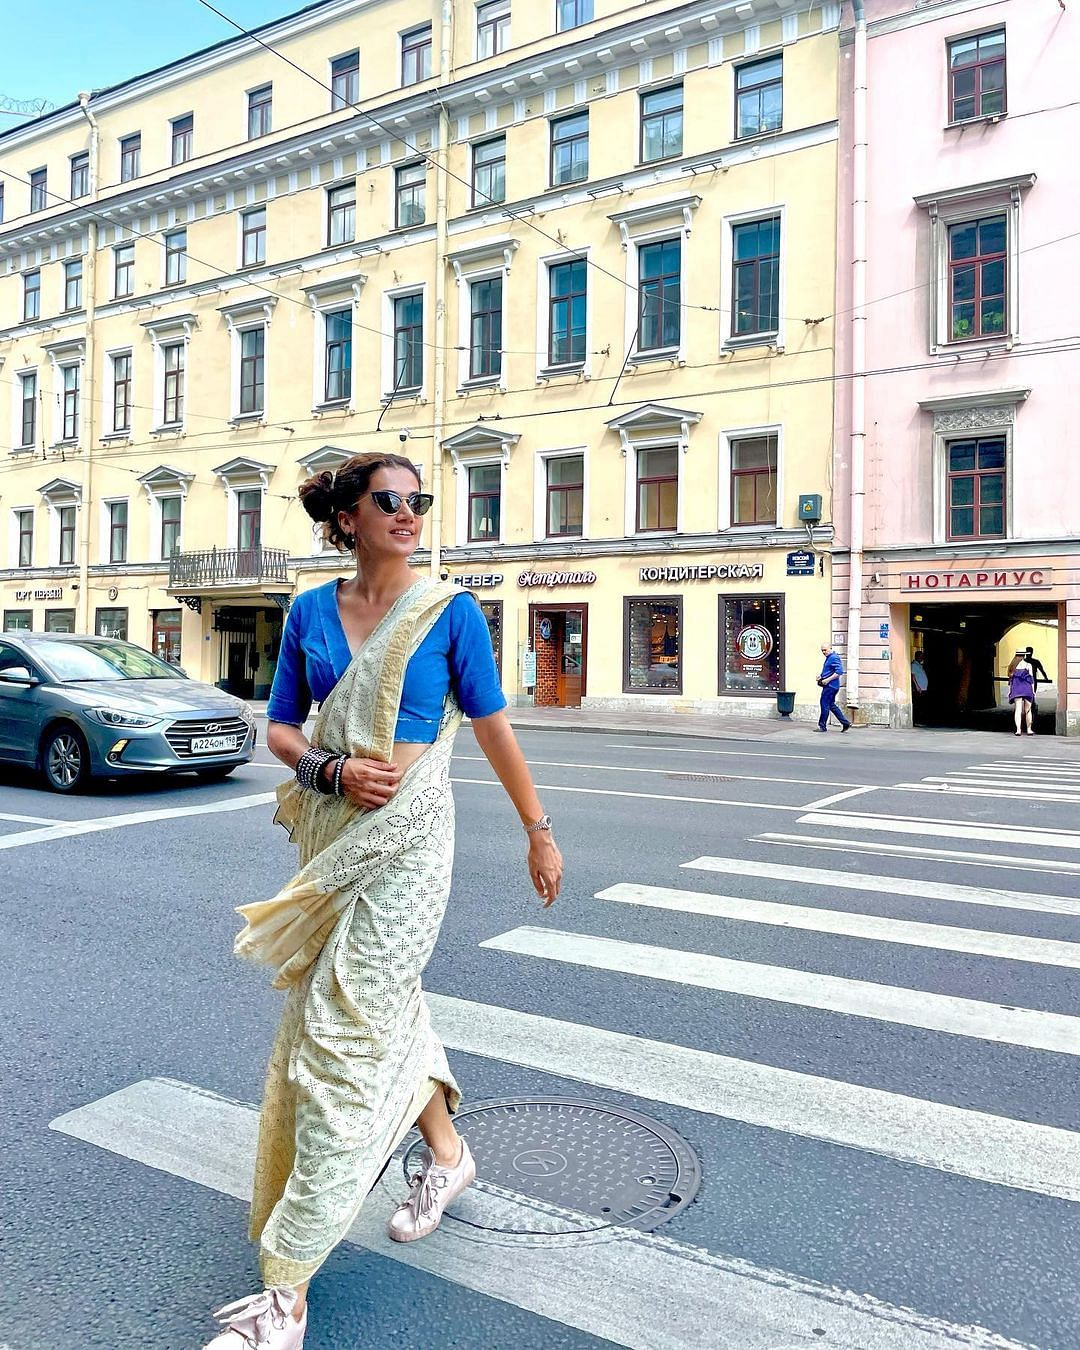 Taapsee Pannu in Russia